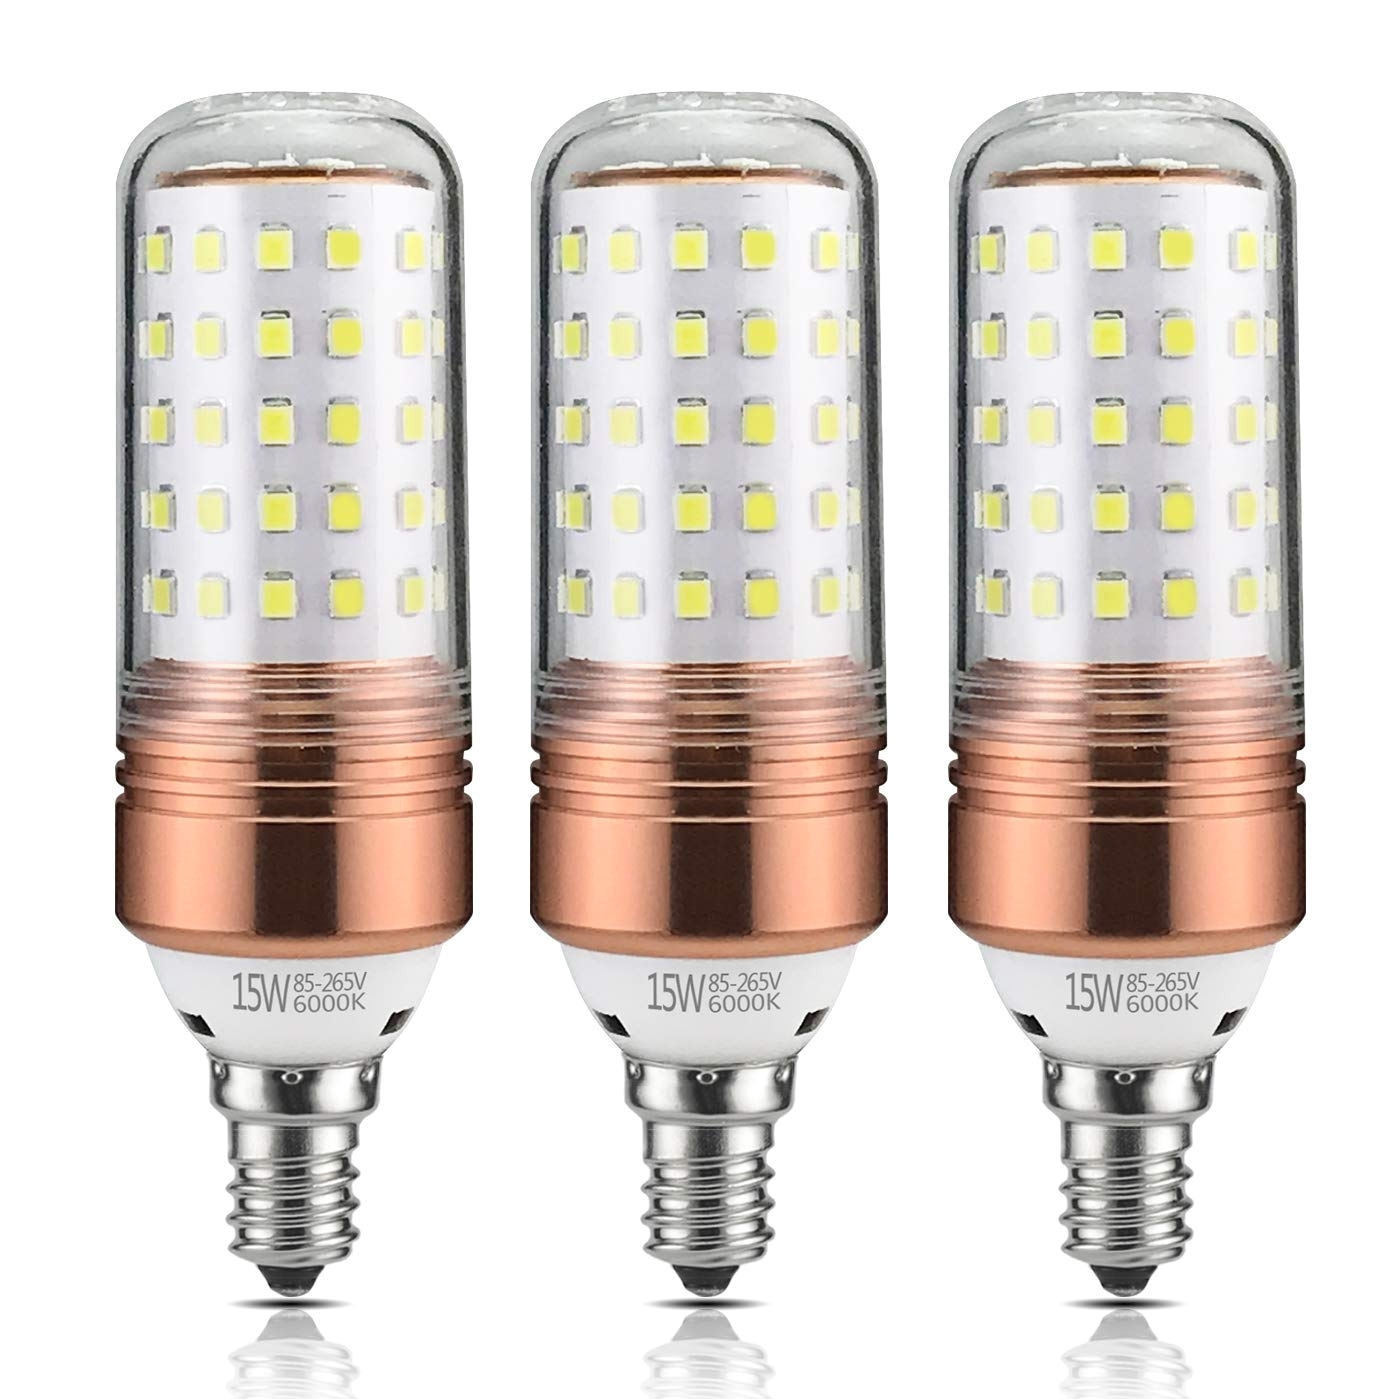 yiizon 15w led candle bulbs 6000k daylight white 1200lm e12 base 120w incandescent equivalent non dimmable candelabra led light bulbs pack of 3